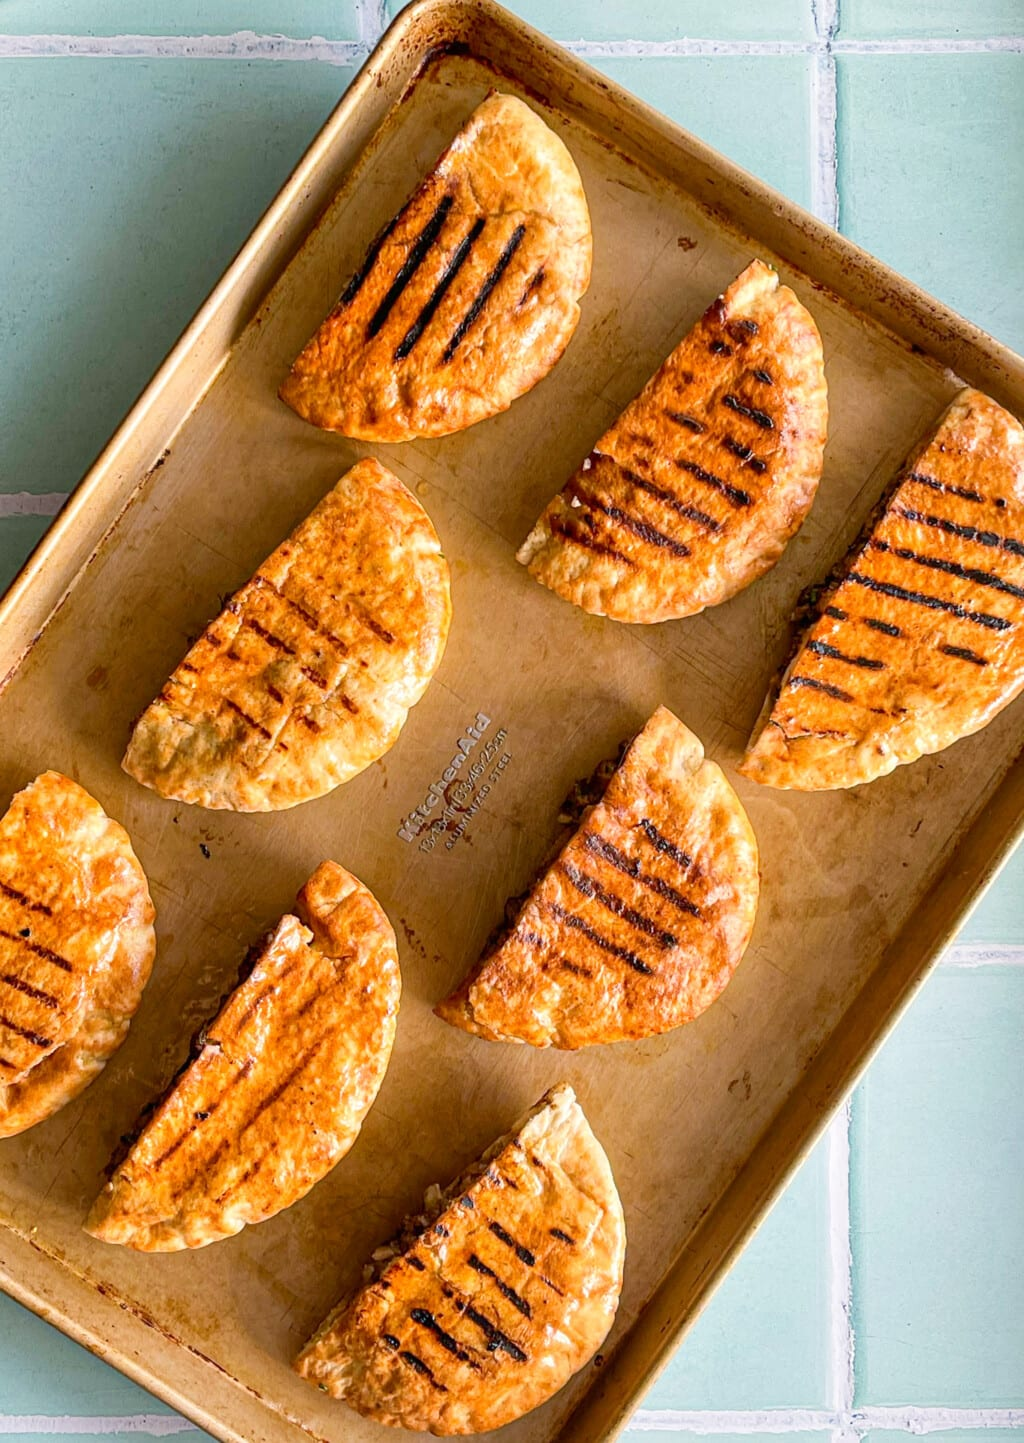 Grilled pita stuffed with ground beef on a baking sheet